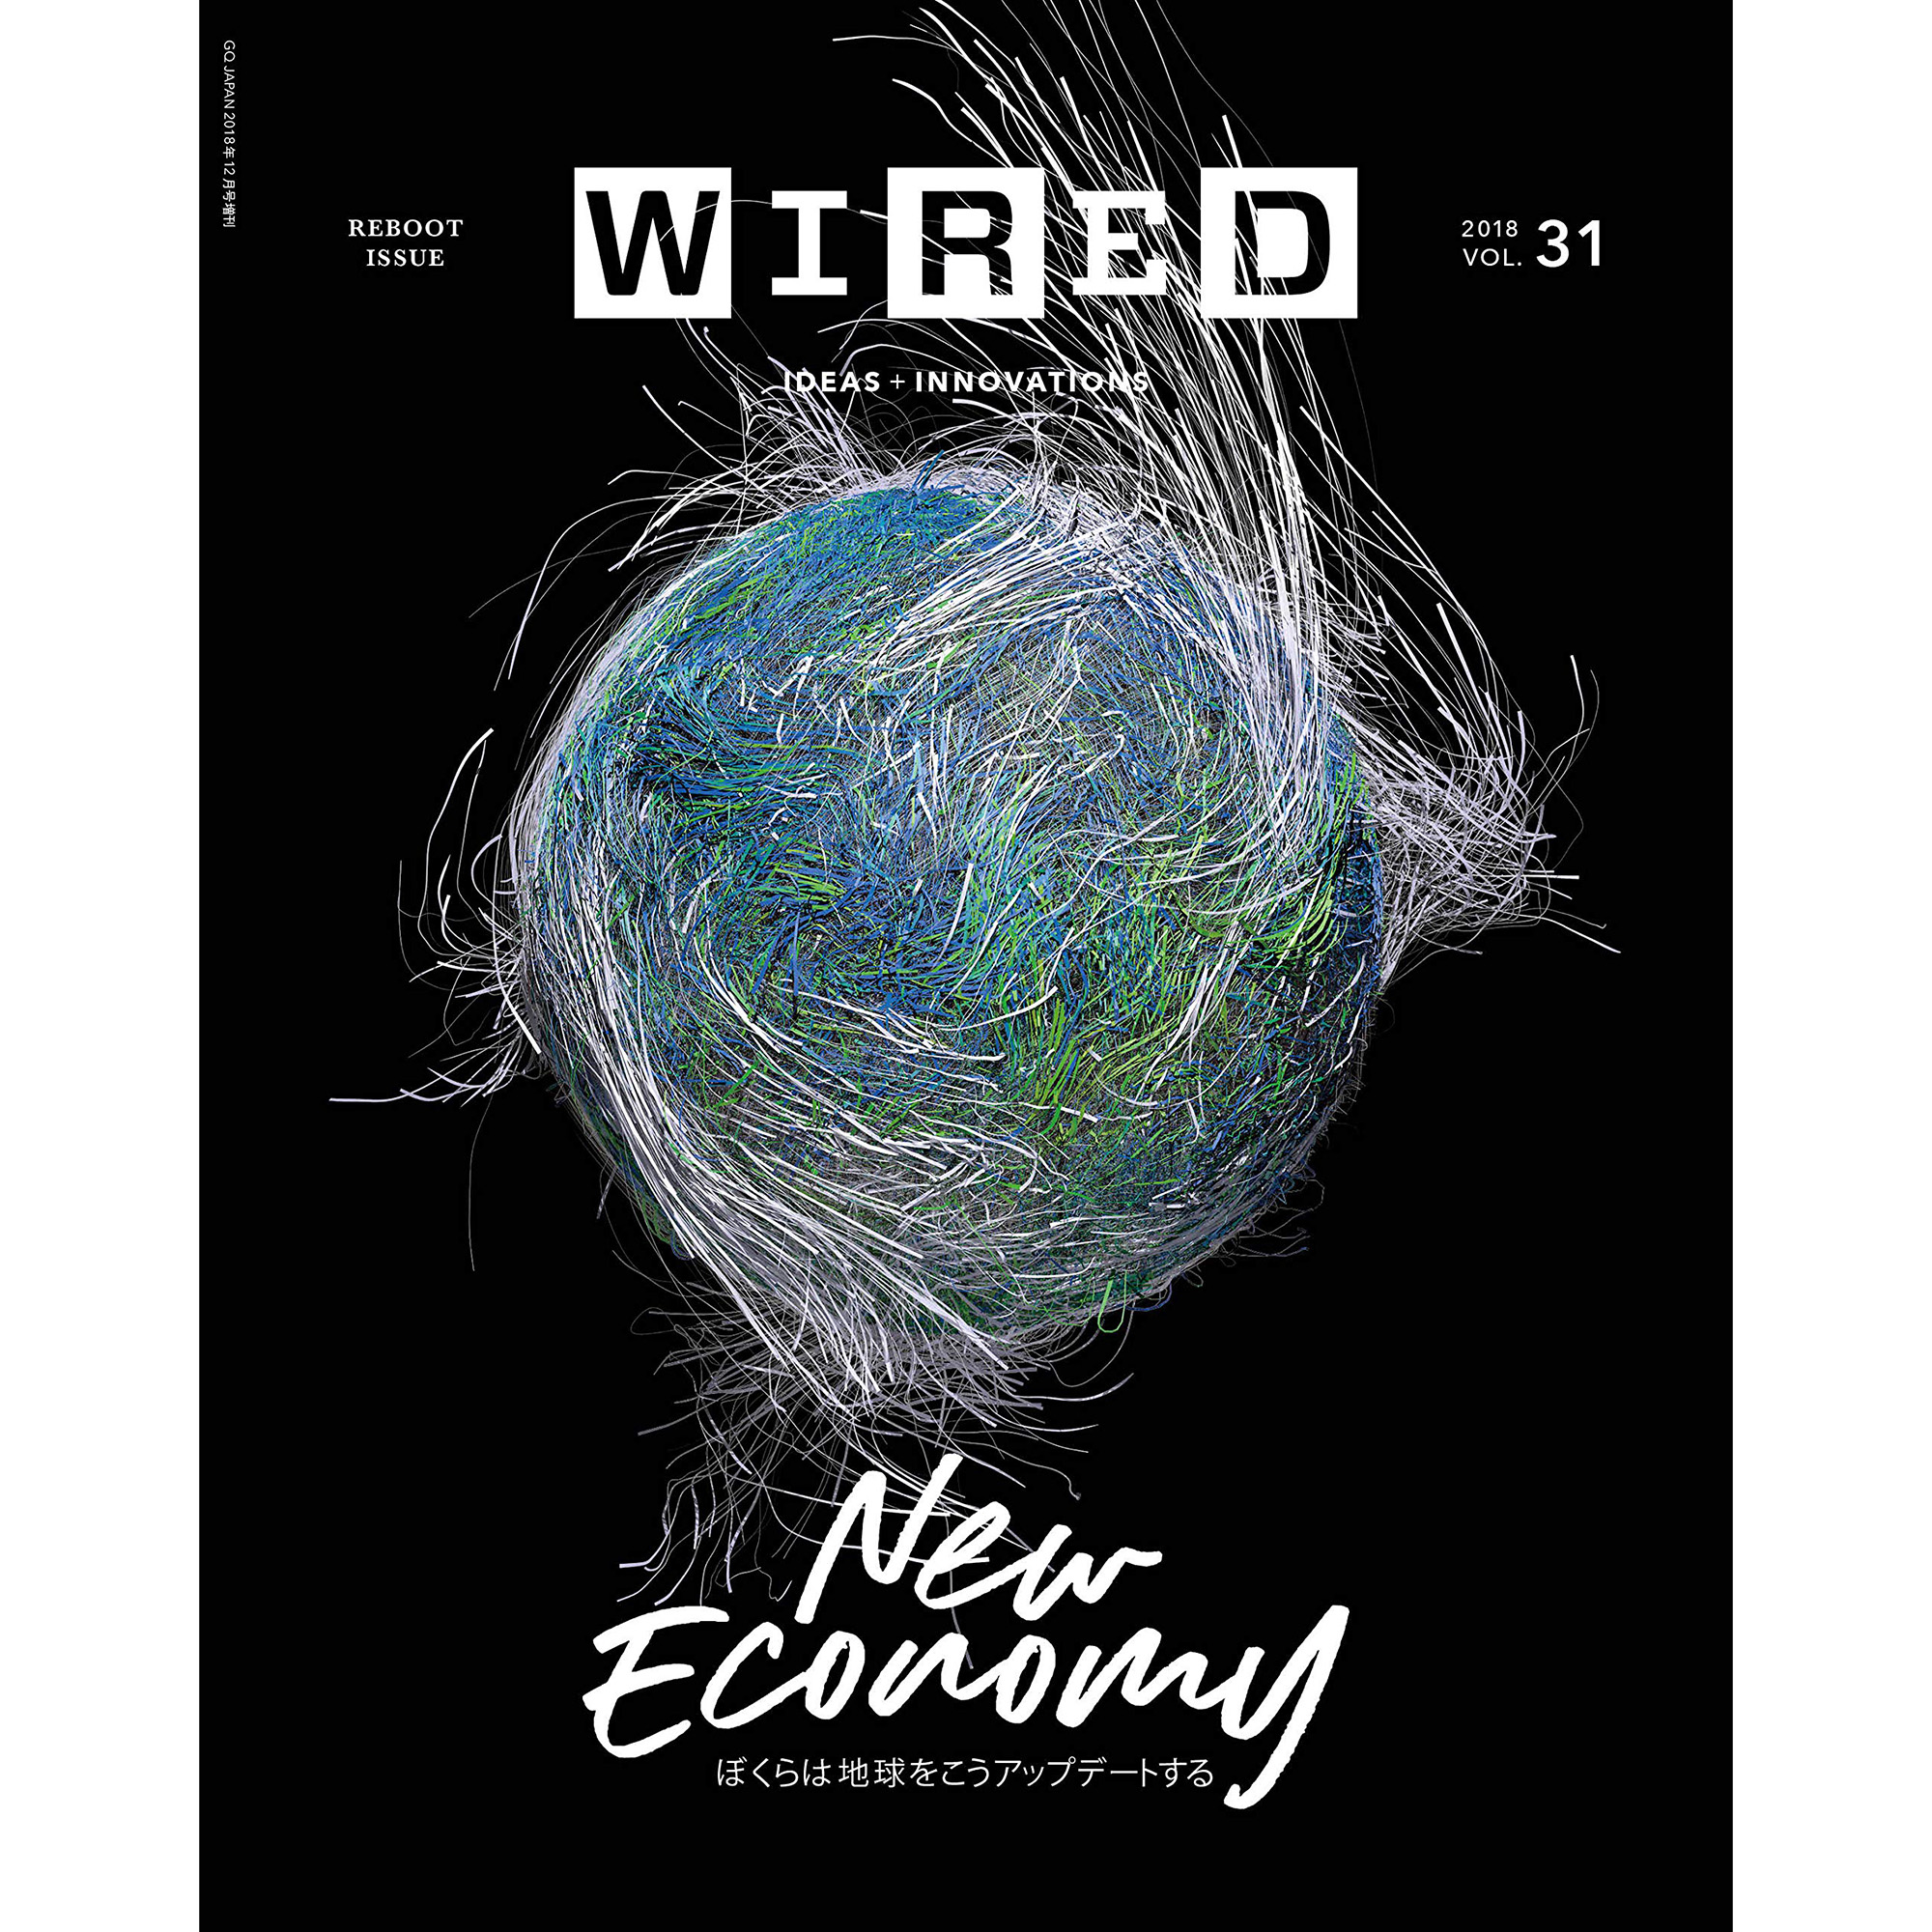 WIRED VOL.31 - New Economy